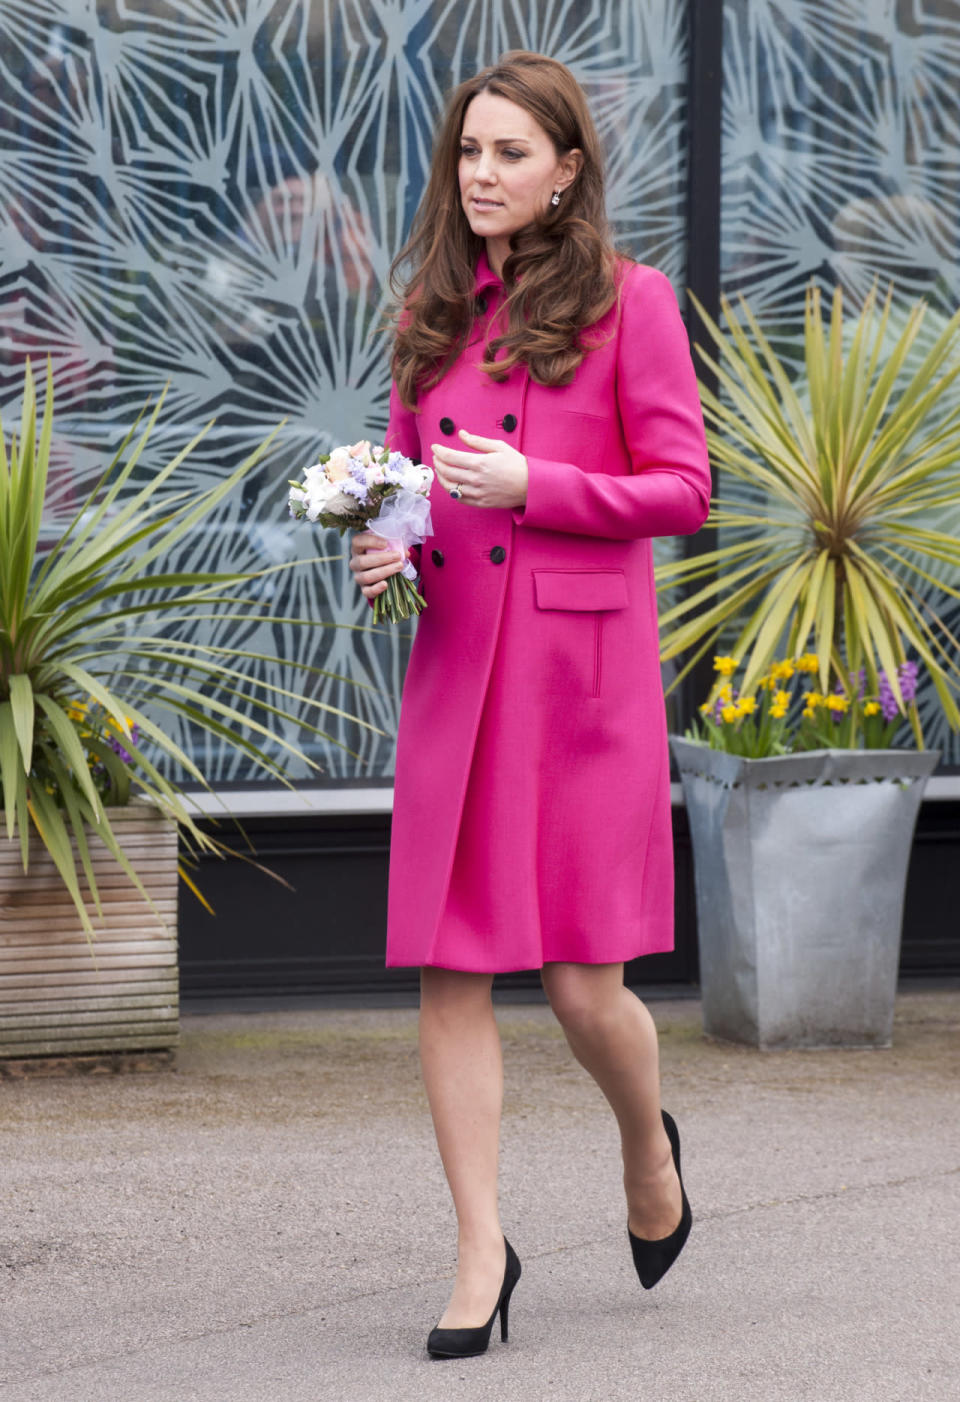 <p>A hot pink Mulberry coat was Kate's outfit of choice for a day in South London. Accessories included suede Stuart Weitzman pumps and her treasured Mulberry Bayswater clutch.</p><p><i>[Photo: PA]</i></p>